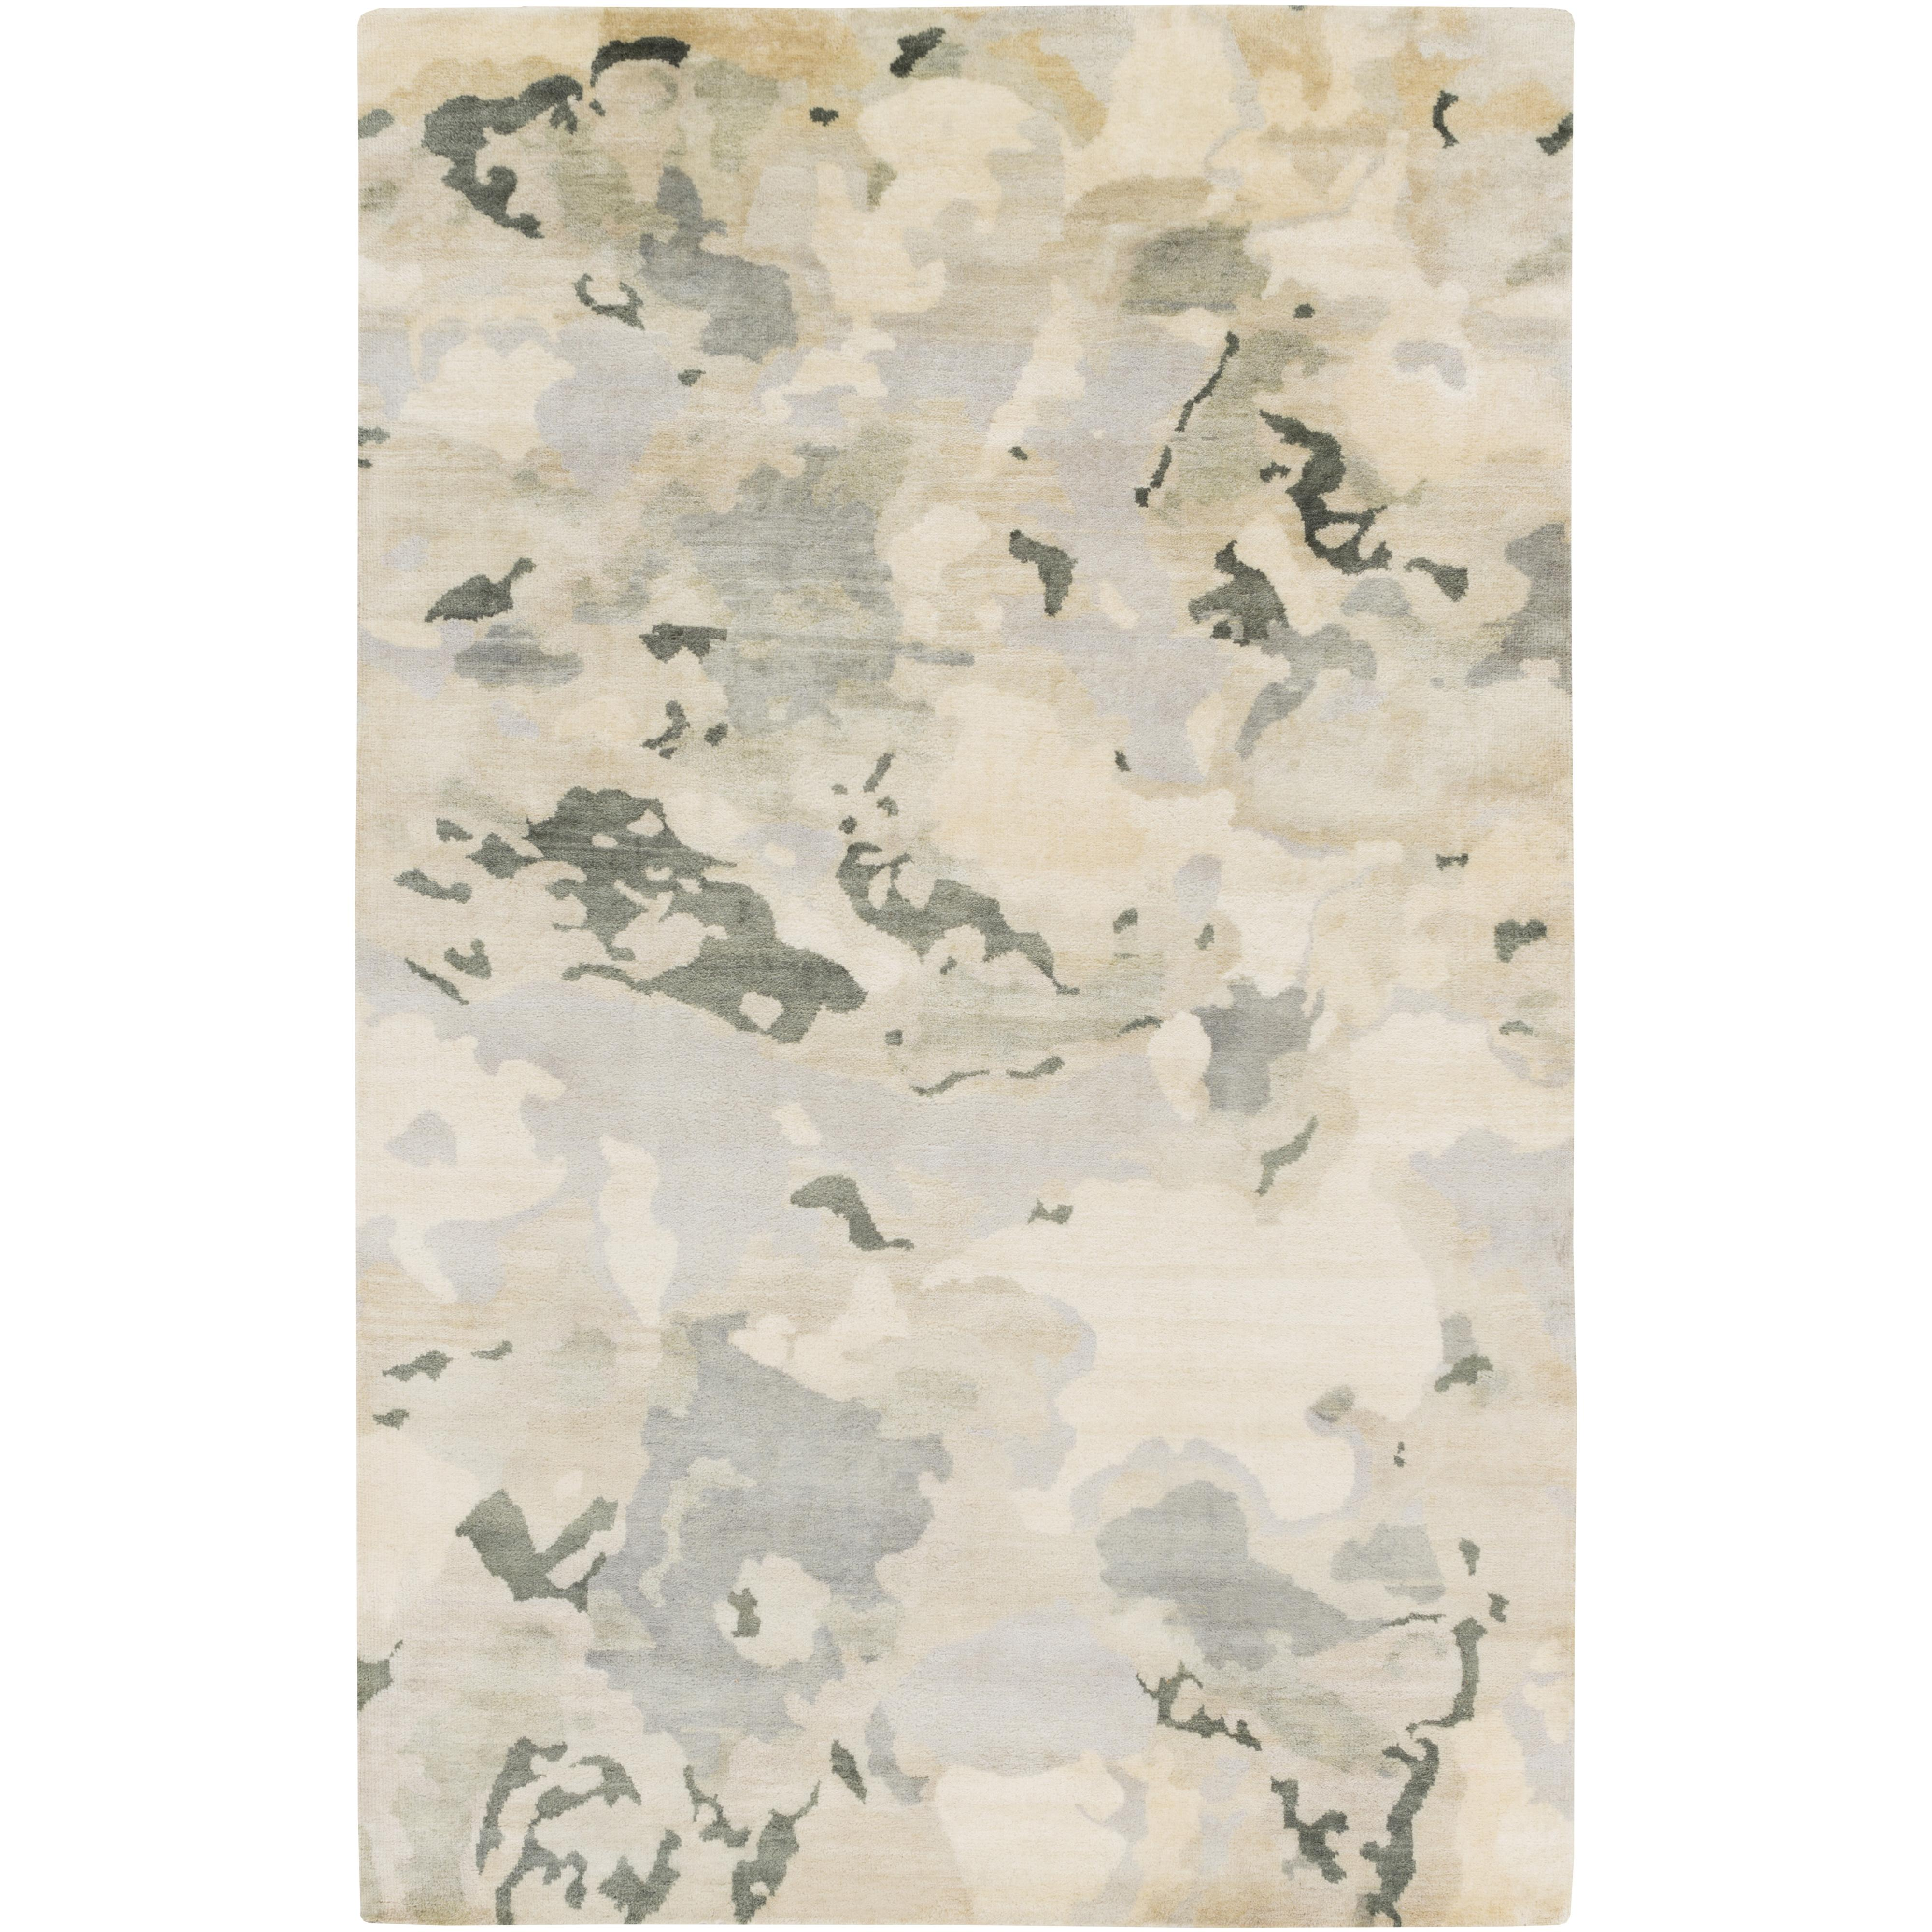 Surya Slice of Nature 9' x 13' - Item Number: SLI6406-913